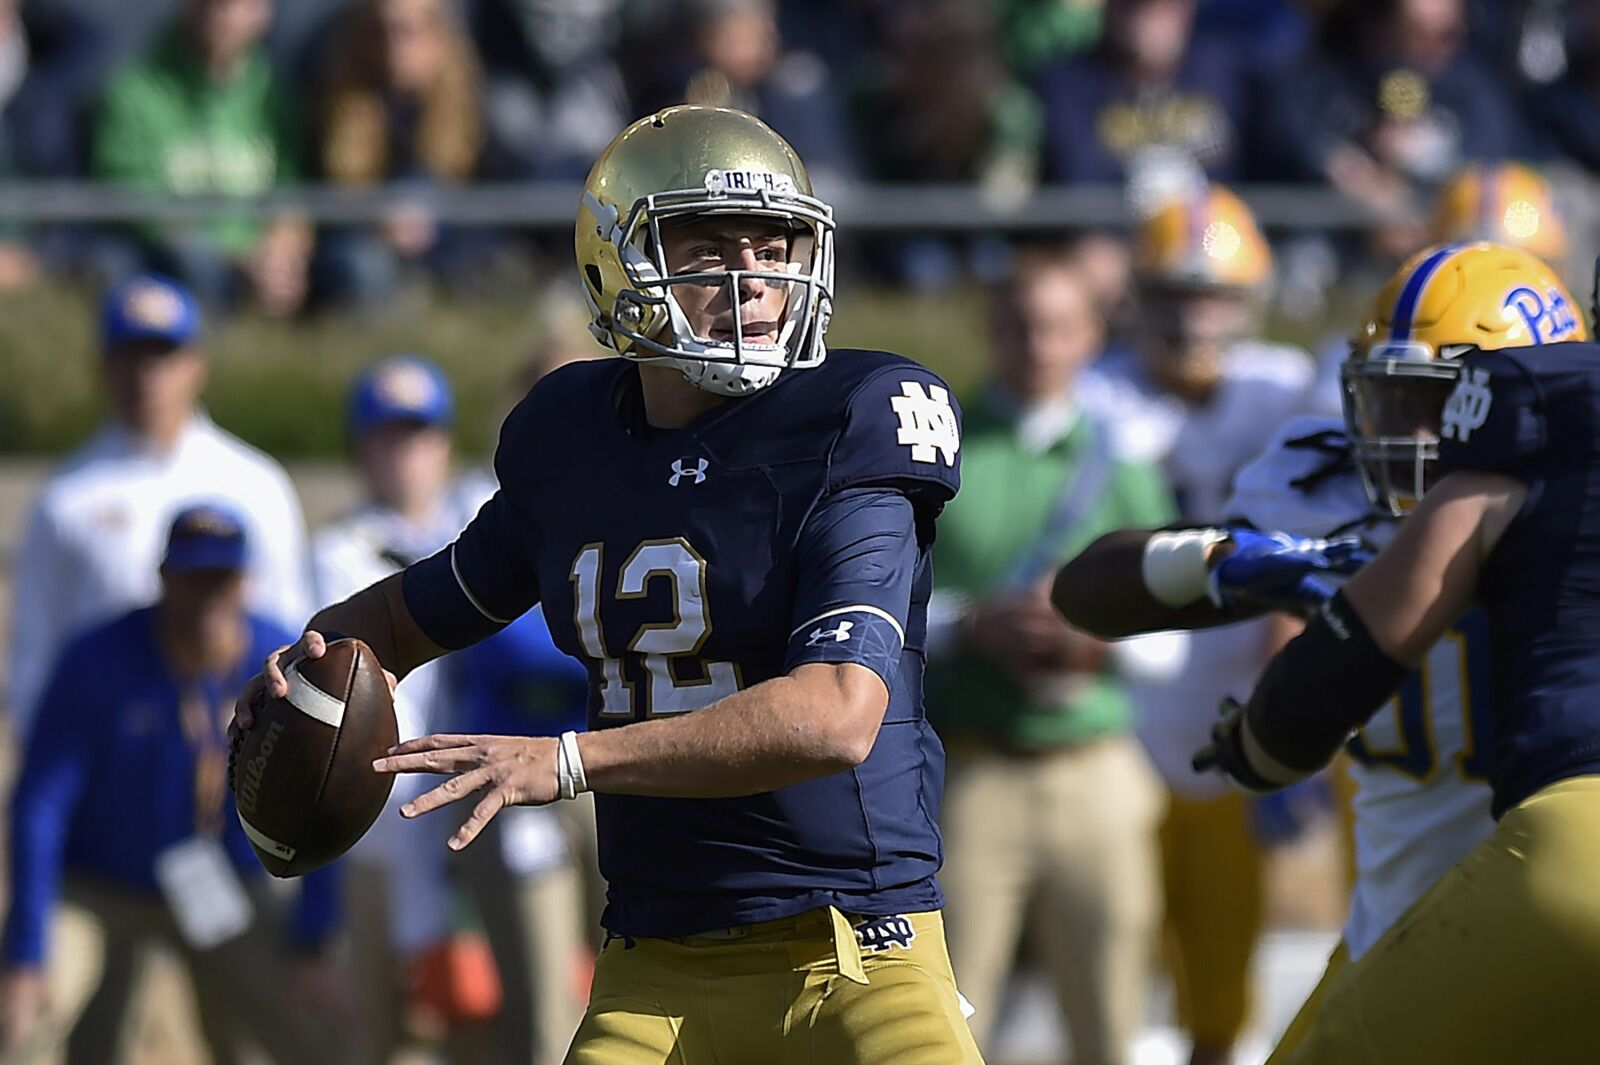 a7a4f23569f4 Notre Dame football 2019 spring preview: Irish contenders or pretenders?